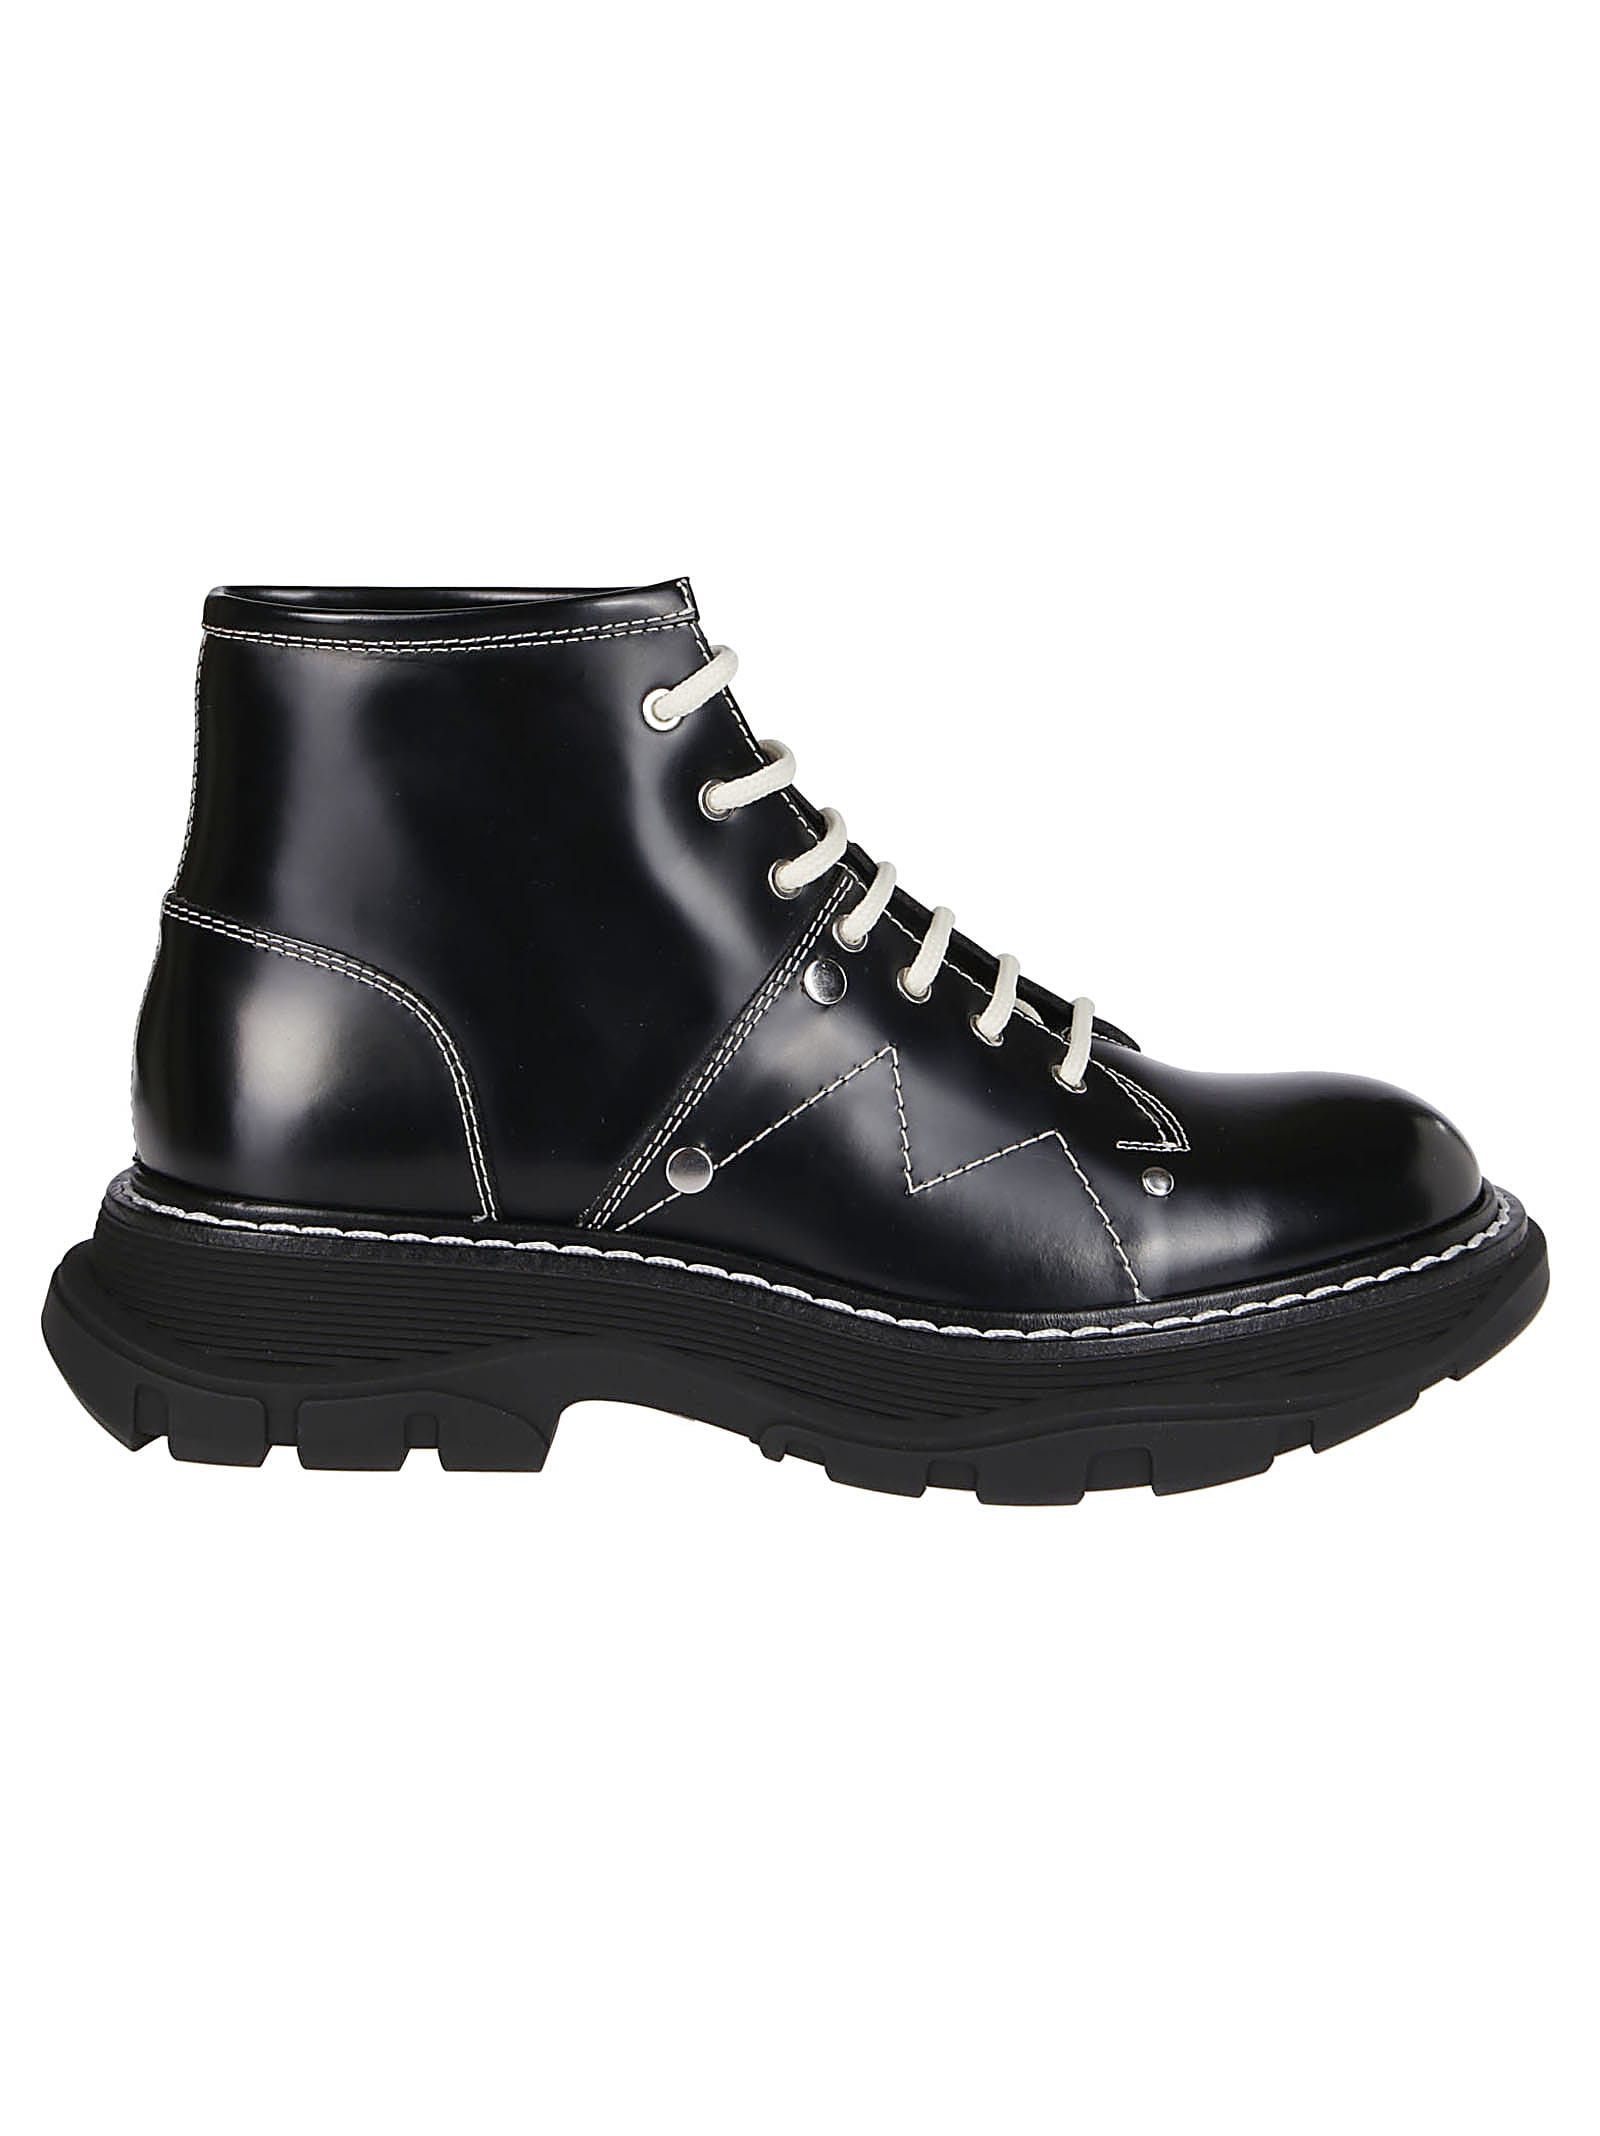 Buy Alexander McQueen Black Leather Tread Boots online, shop Alexander McQueen shoes with free shipping